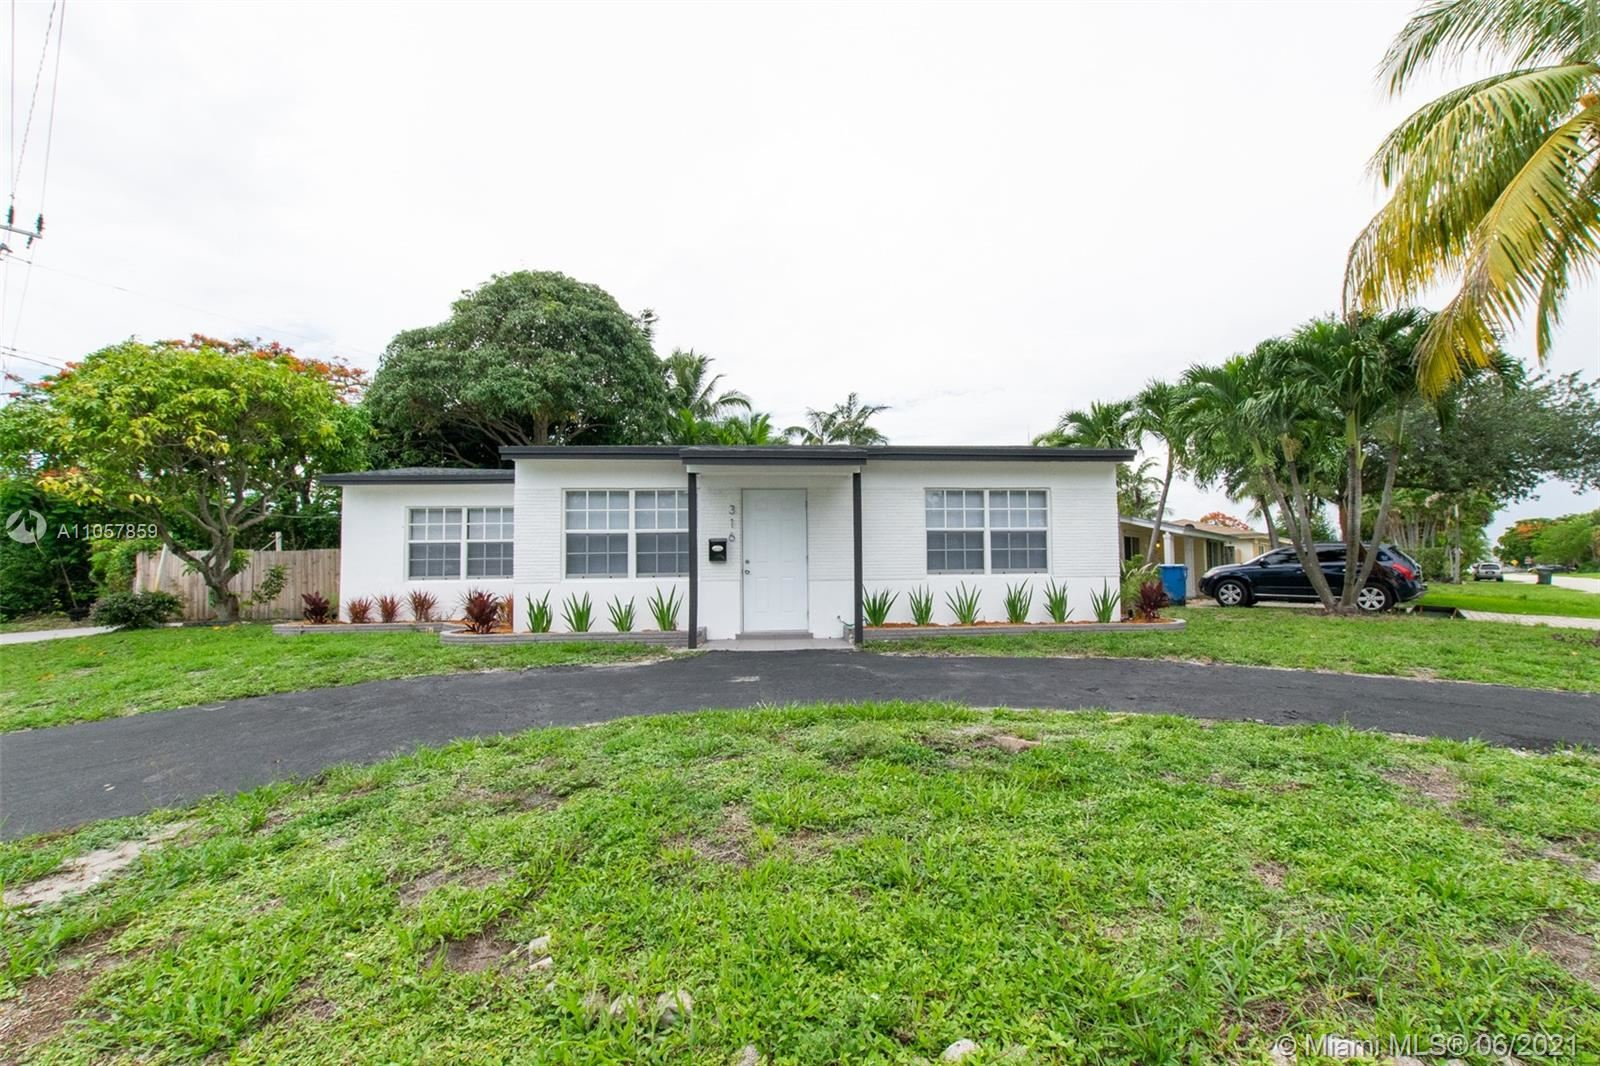 316 NW 47th St, Oakland Park, FL 33309 - #: A11057859